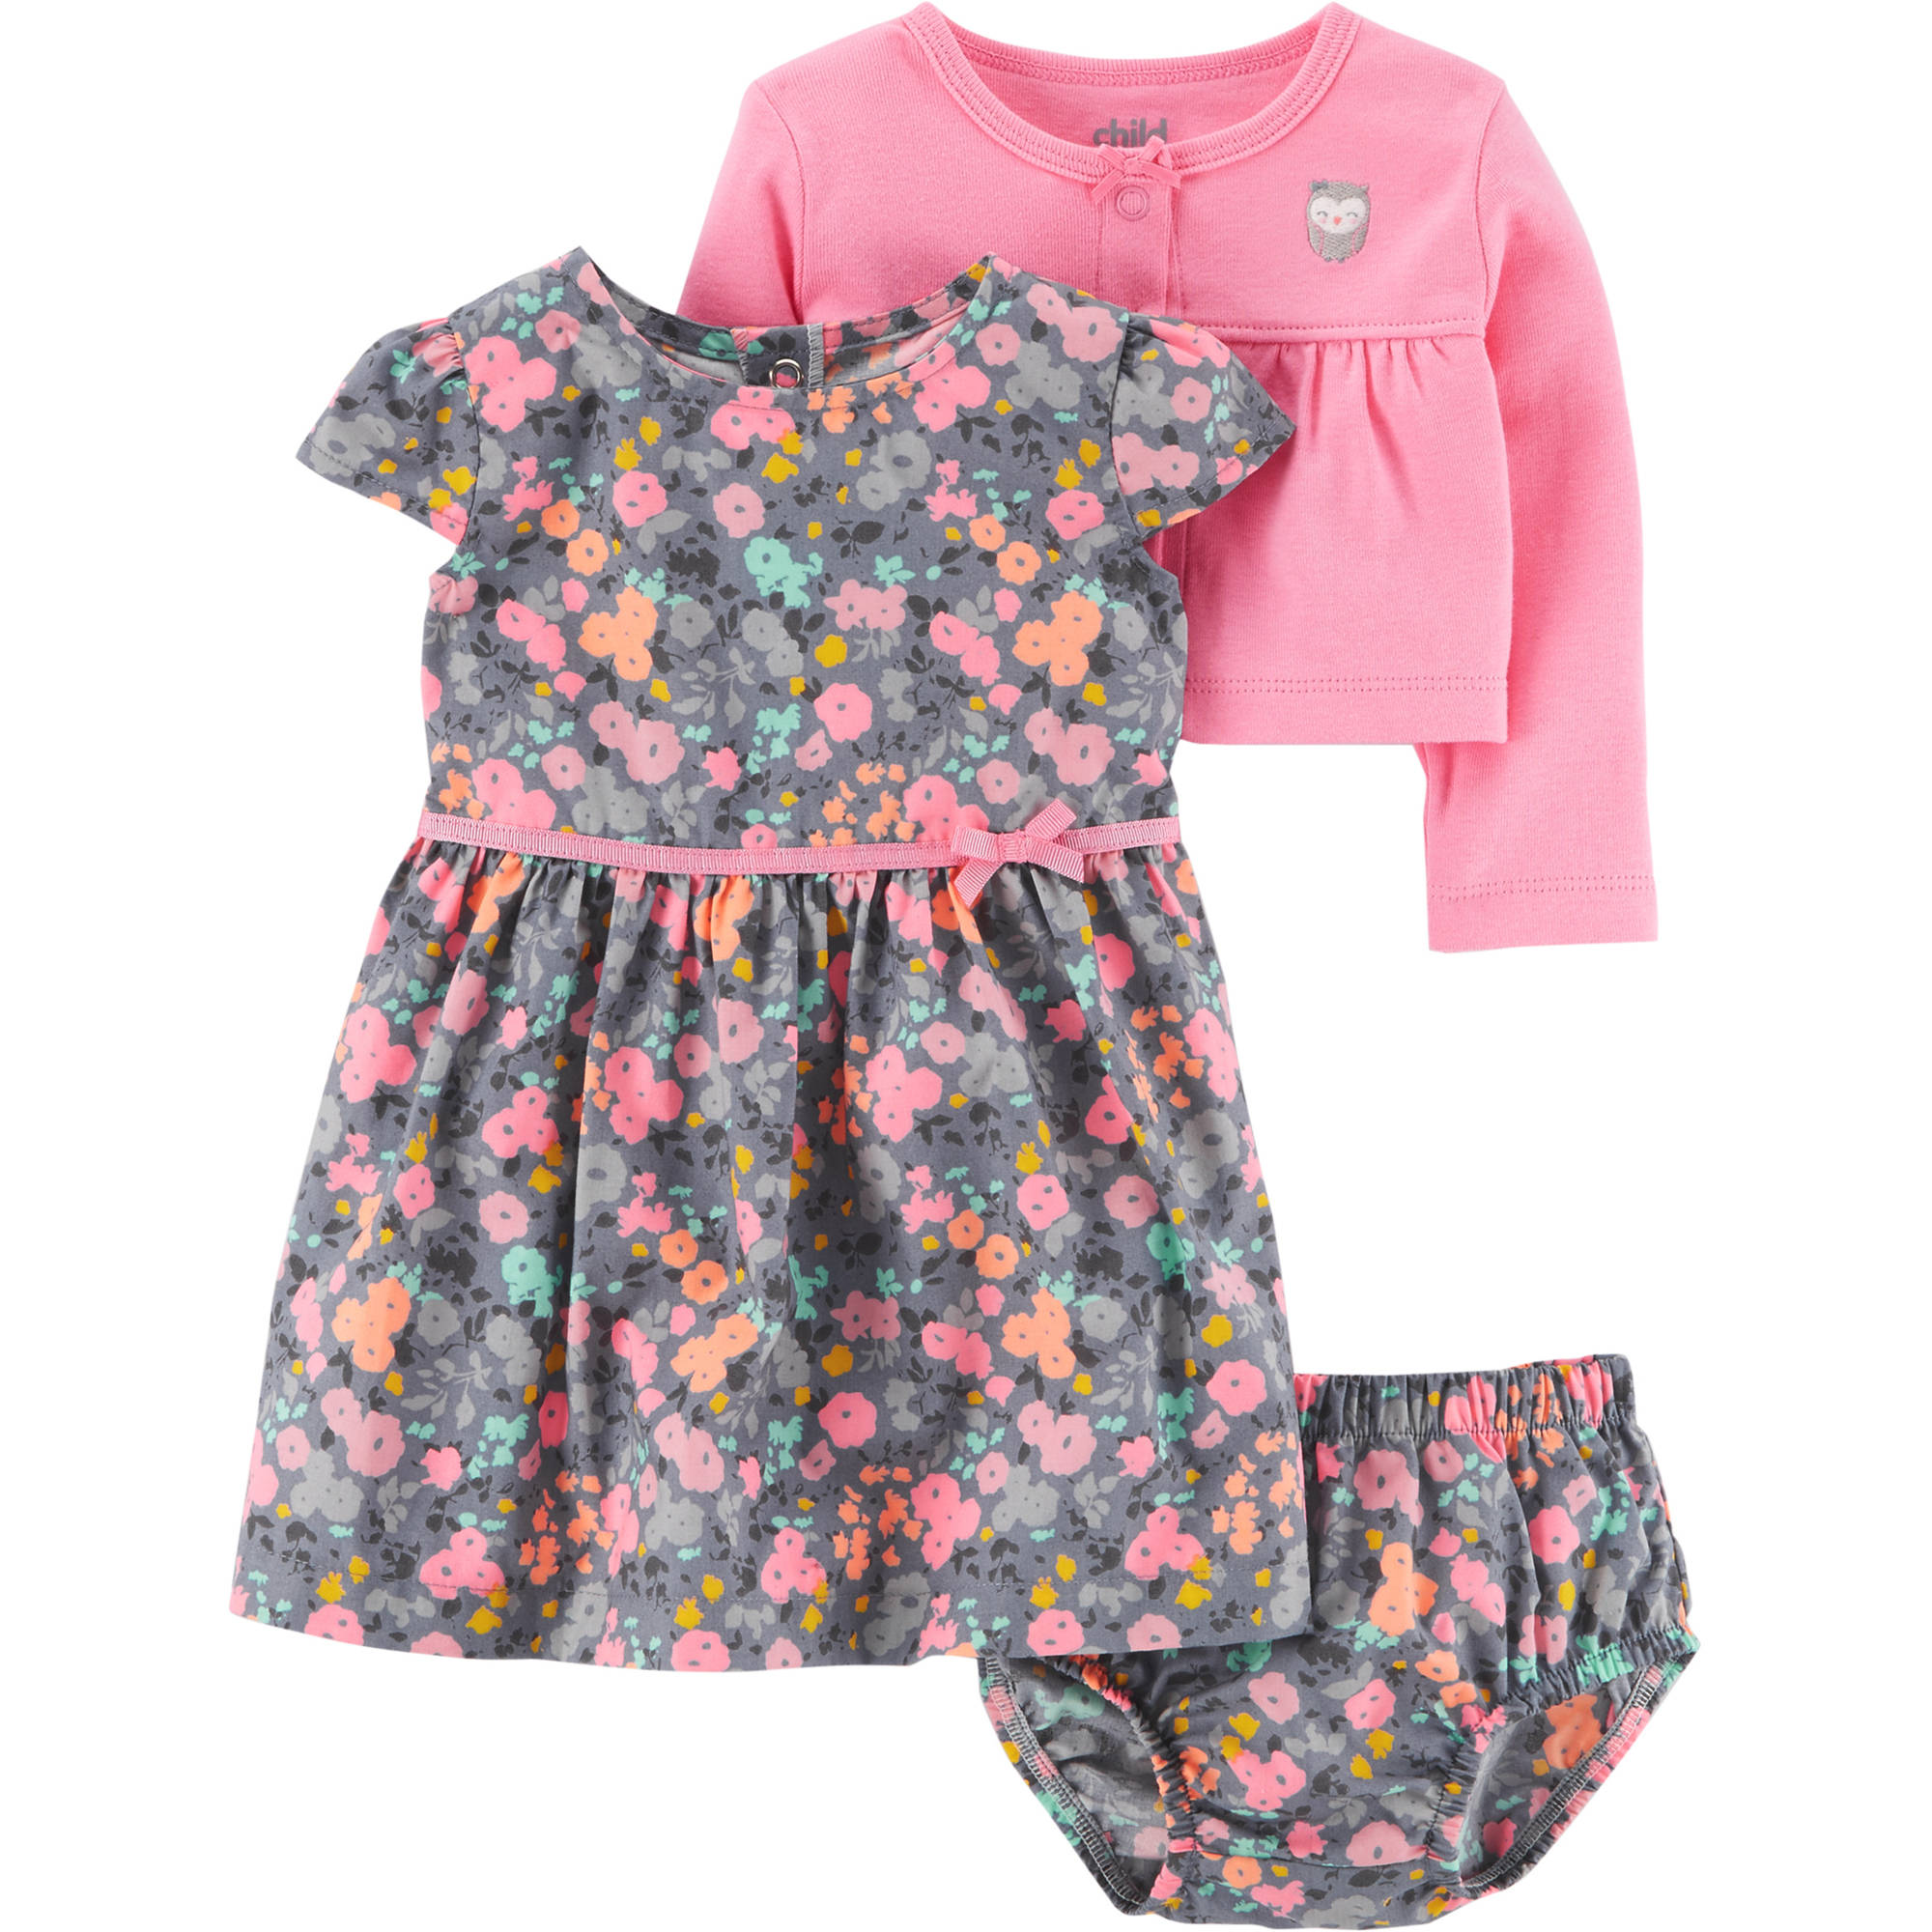 Child of Mine by Carter's Baby Girl Cardigan, Dress, and Diaper Cover, 3pc Outfit Set